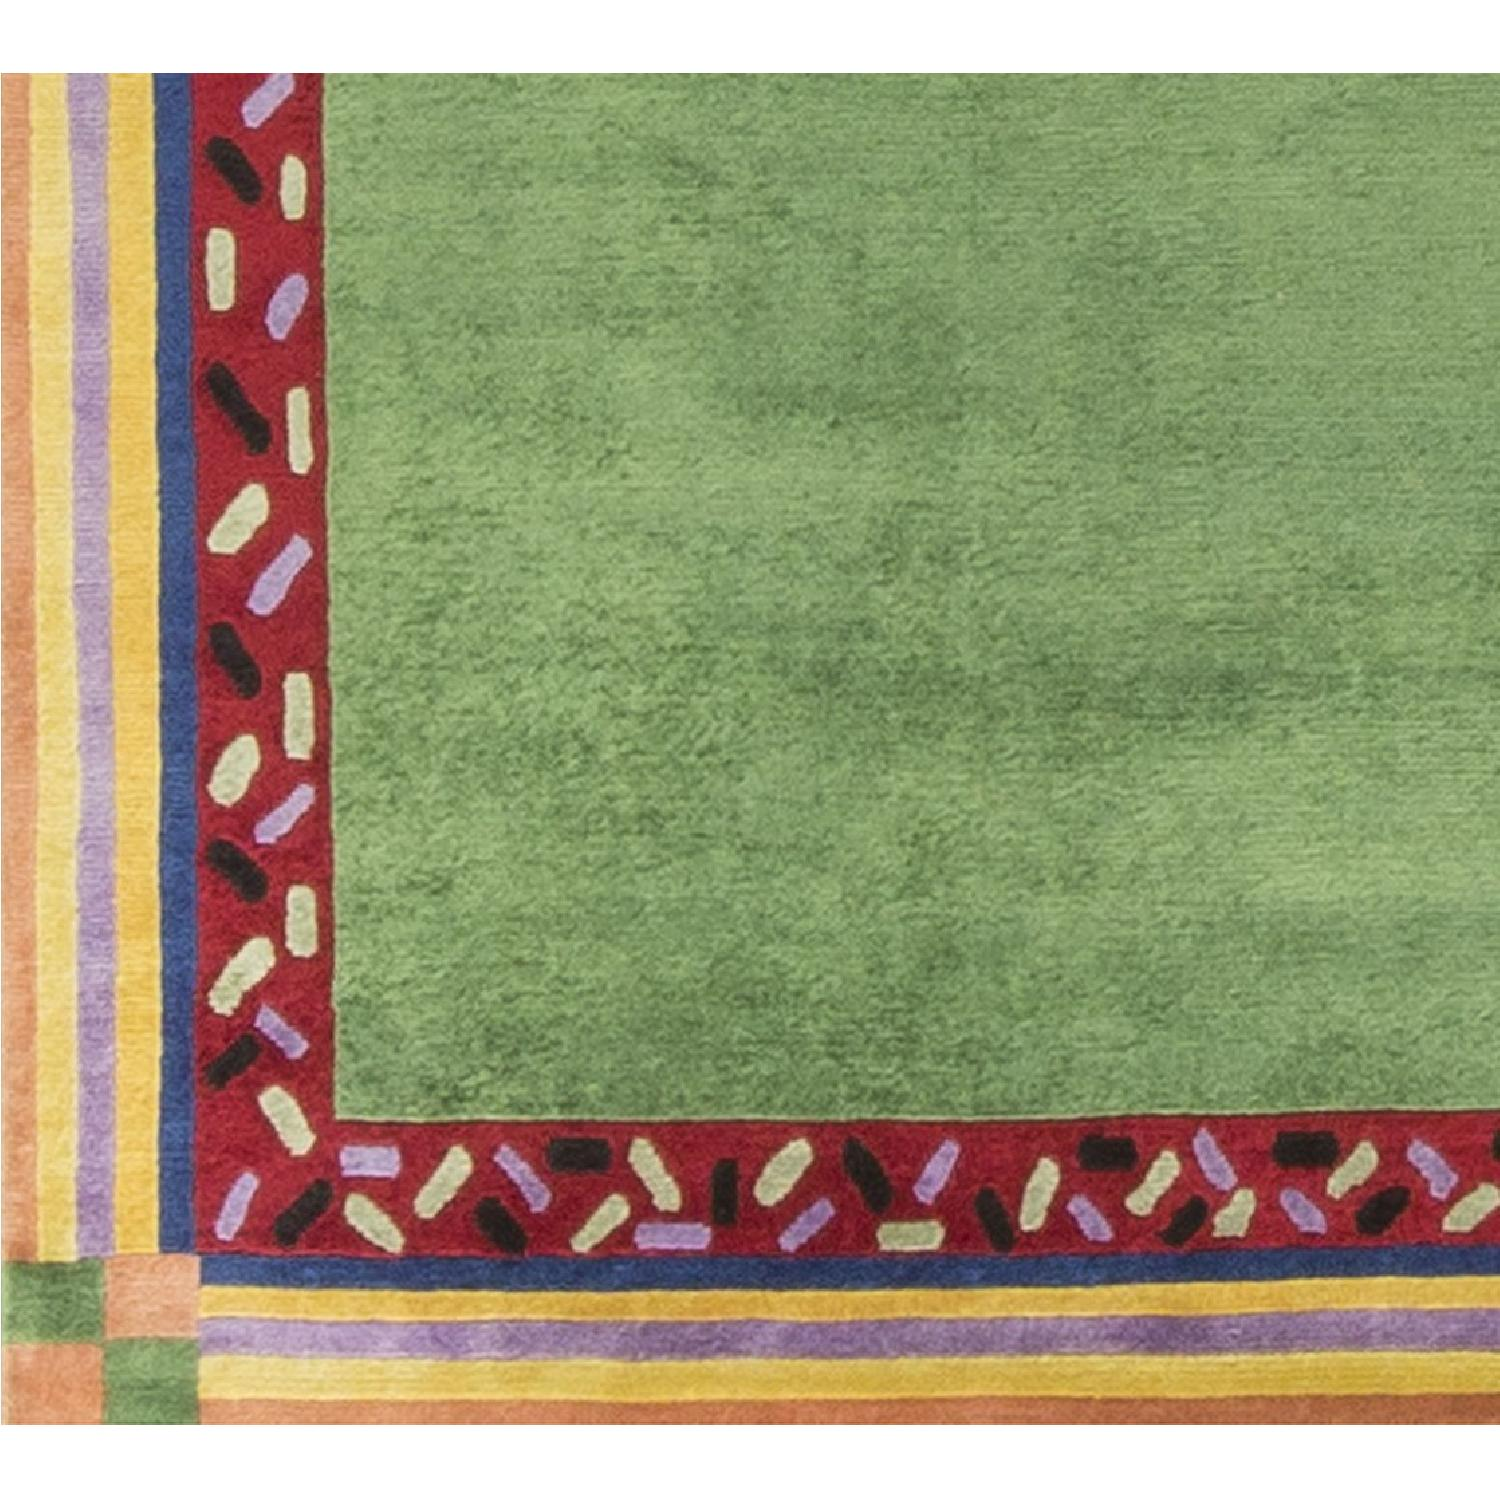 Modern Contemporary Hand Knotted Wool Rug in Green/Red - image-2